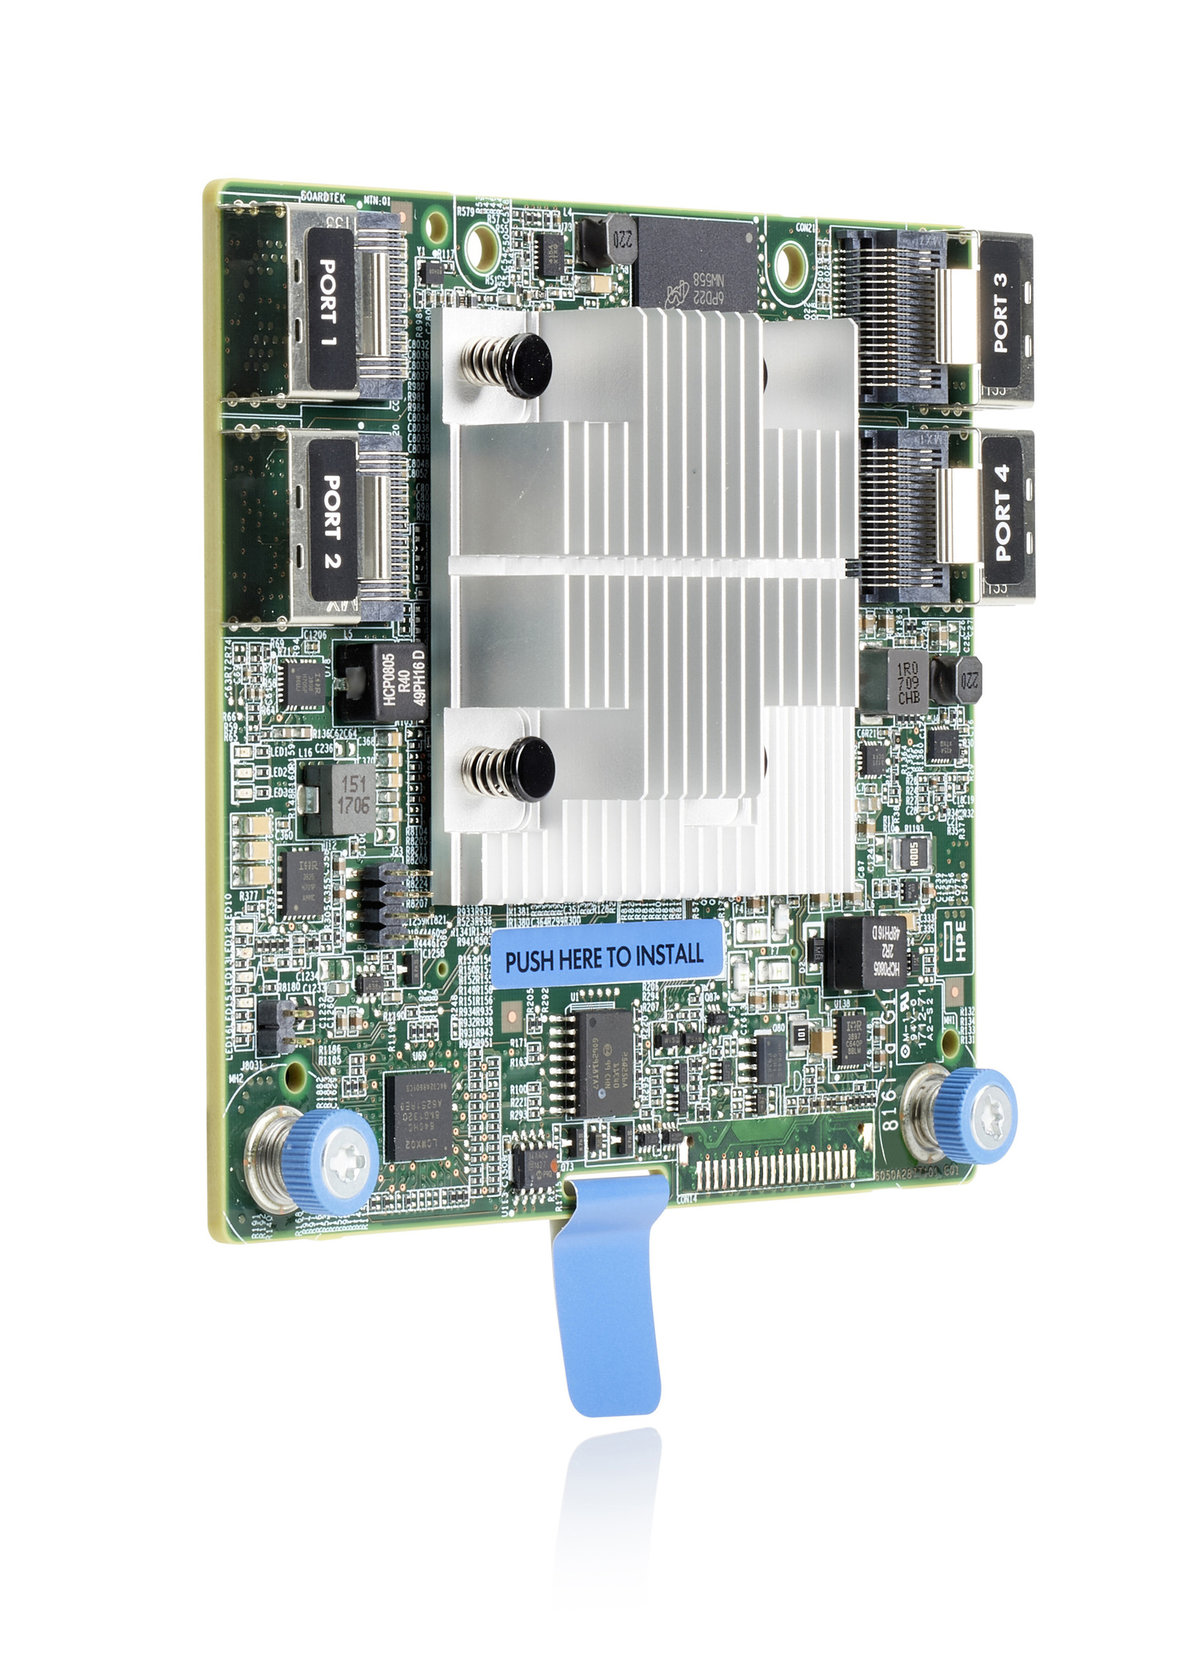 LENOVO THINKCENTRE S51 NATIONAL SEMICONDUCTOR WINDOWS 8 X64 DRIVER DOWNLOAD